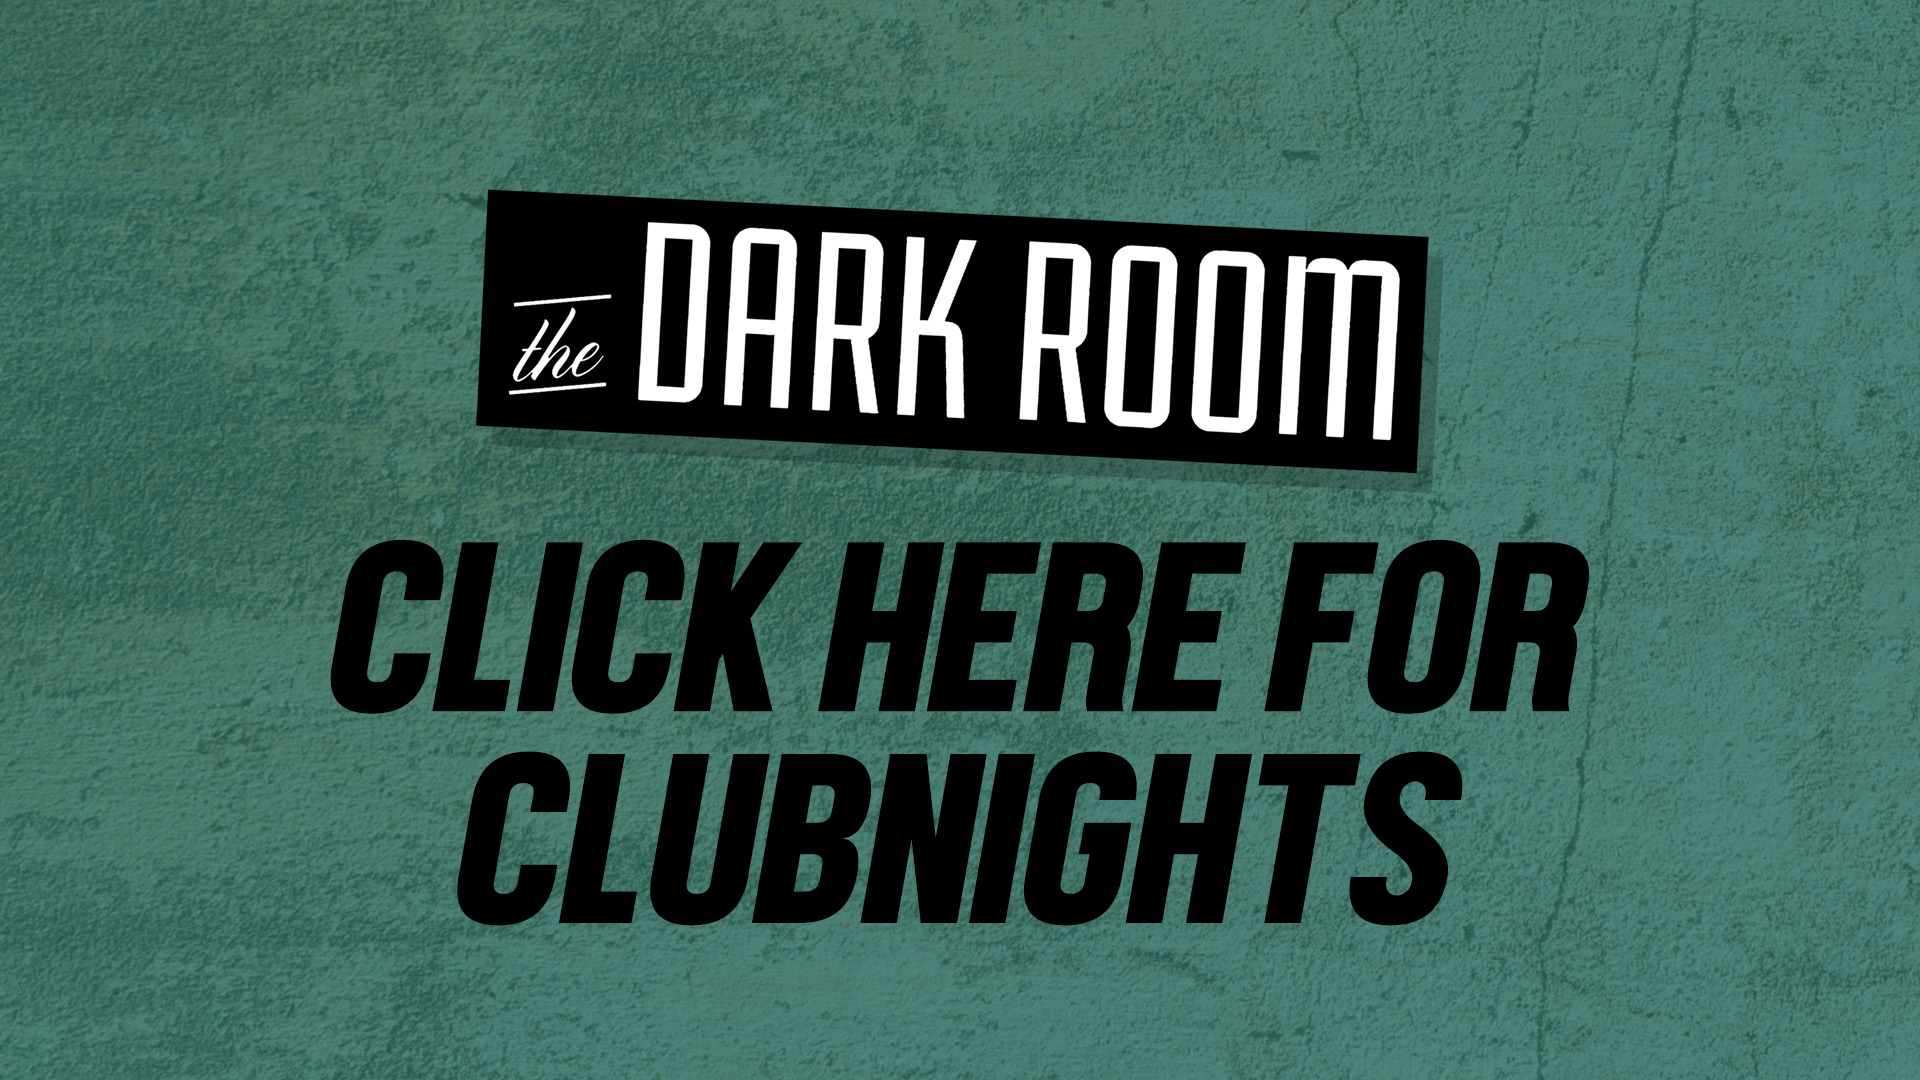 Clubnights at The Dark Room